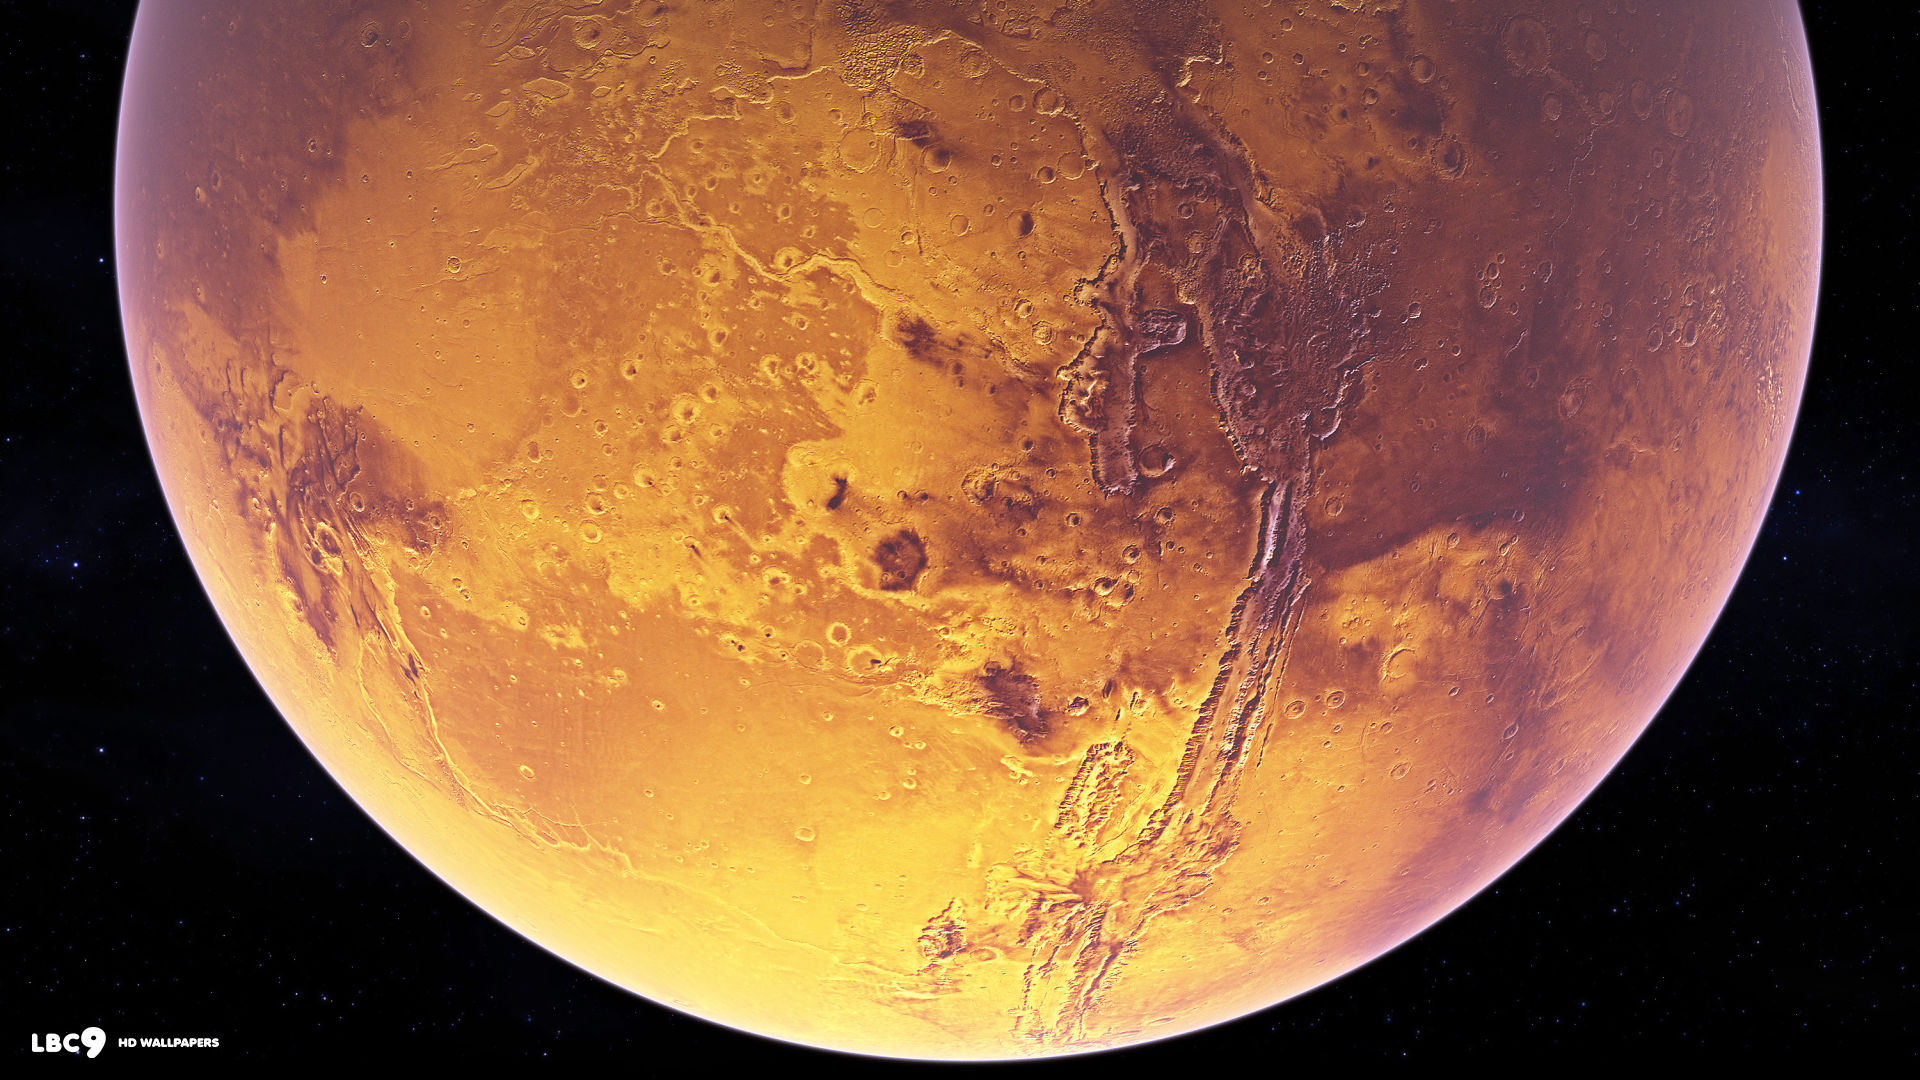 Hd photo of mars from nasa MARS Greeley Haven 360 Panorama - Photo